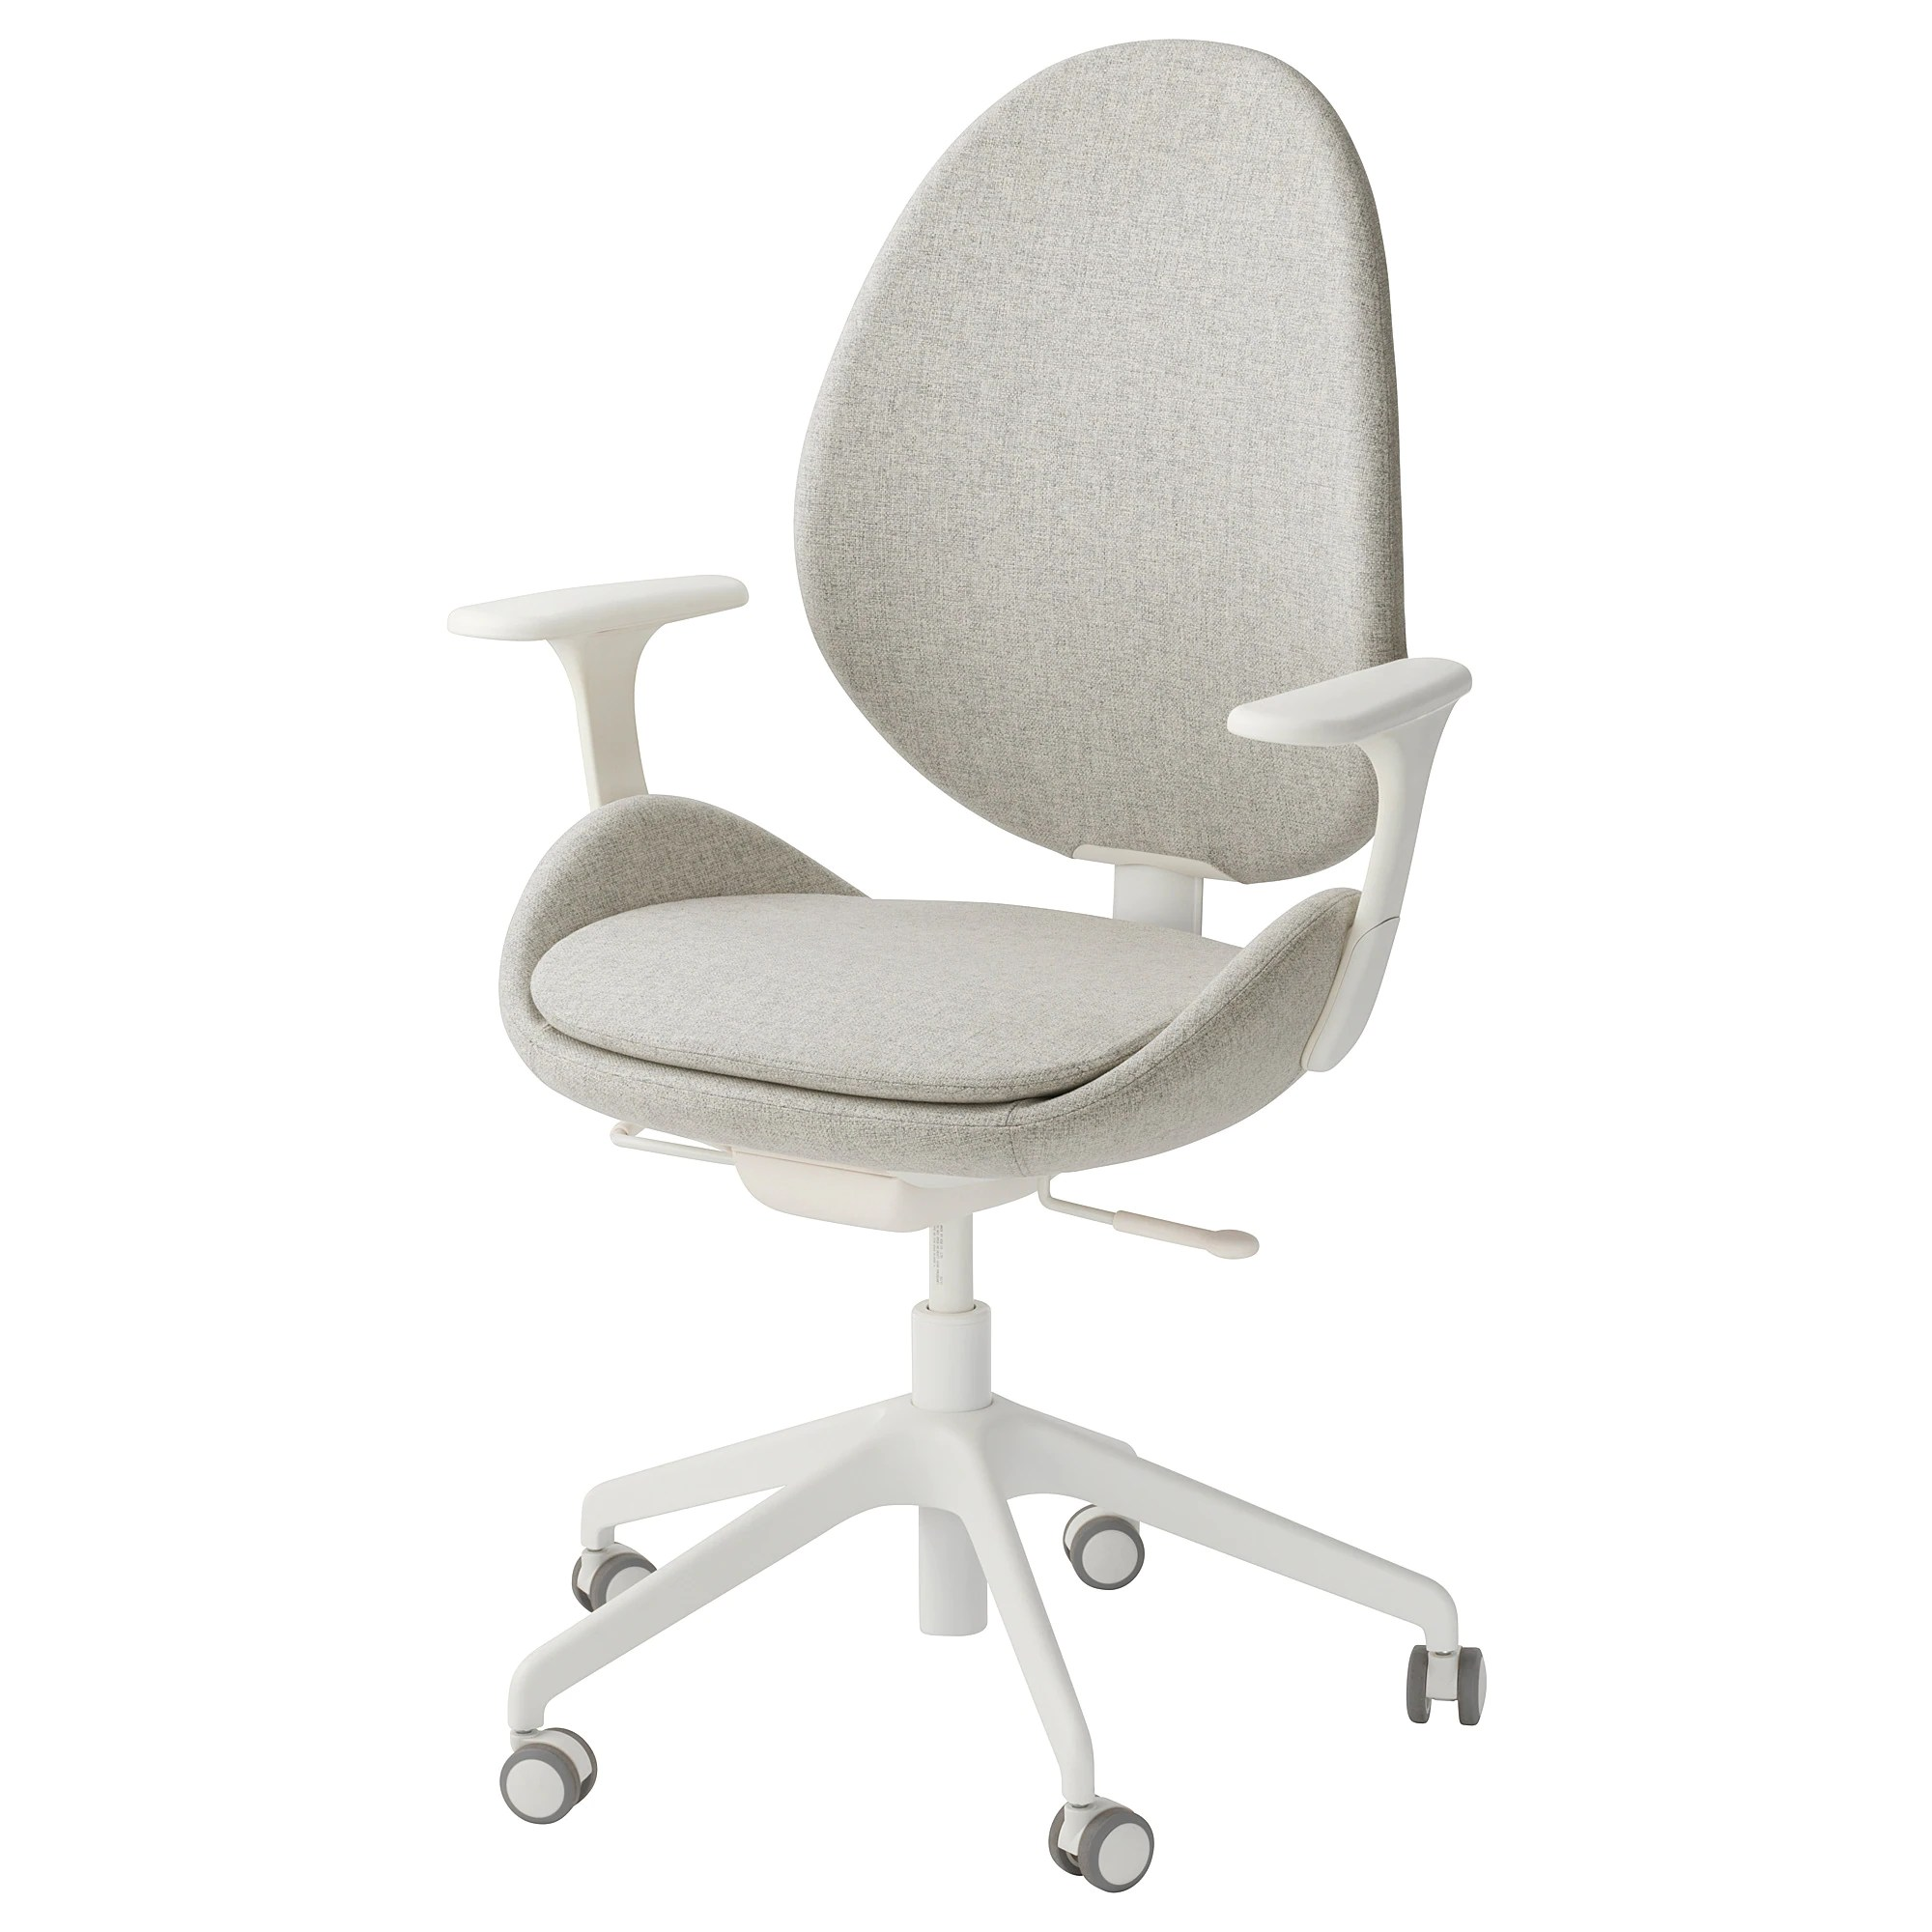 white ikea office chair chairs on sale hattefjall swivel with armrests gunnared beige